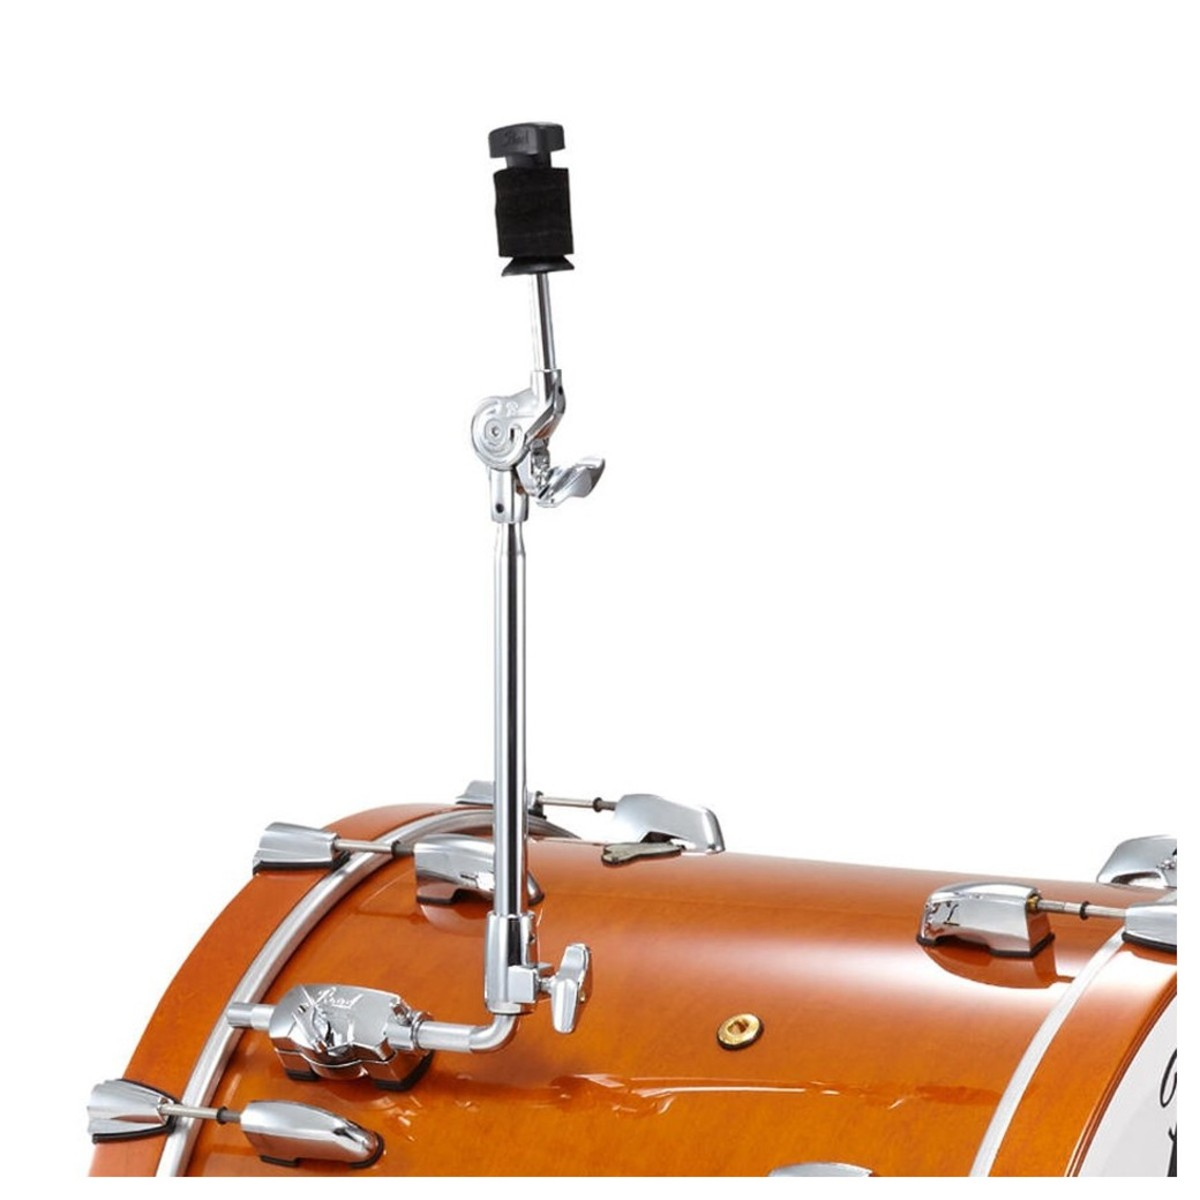 pearl chb 830 bass drum mount cymbal holder at gear4music. Black Bedroom Furniture Sets. Home Design Ideas